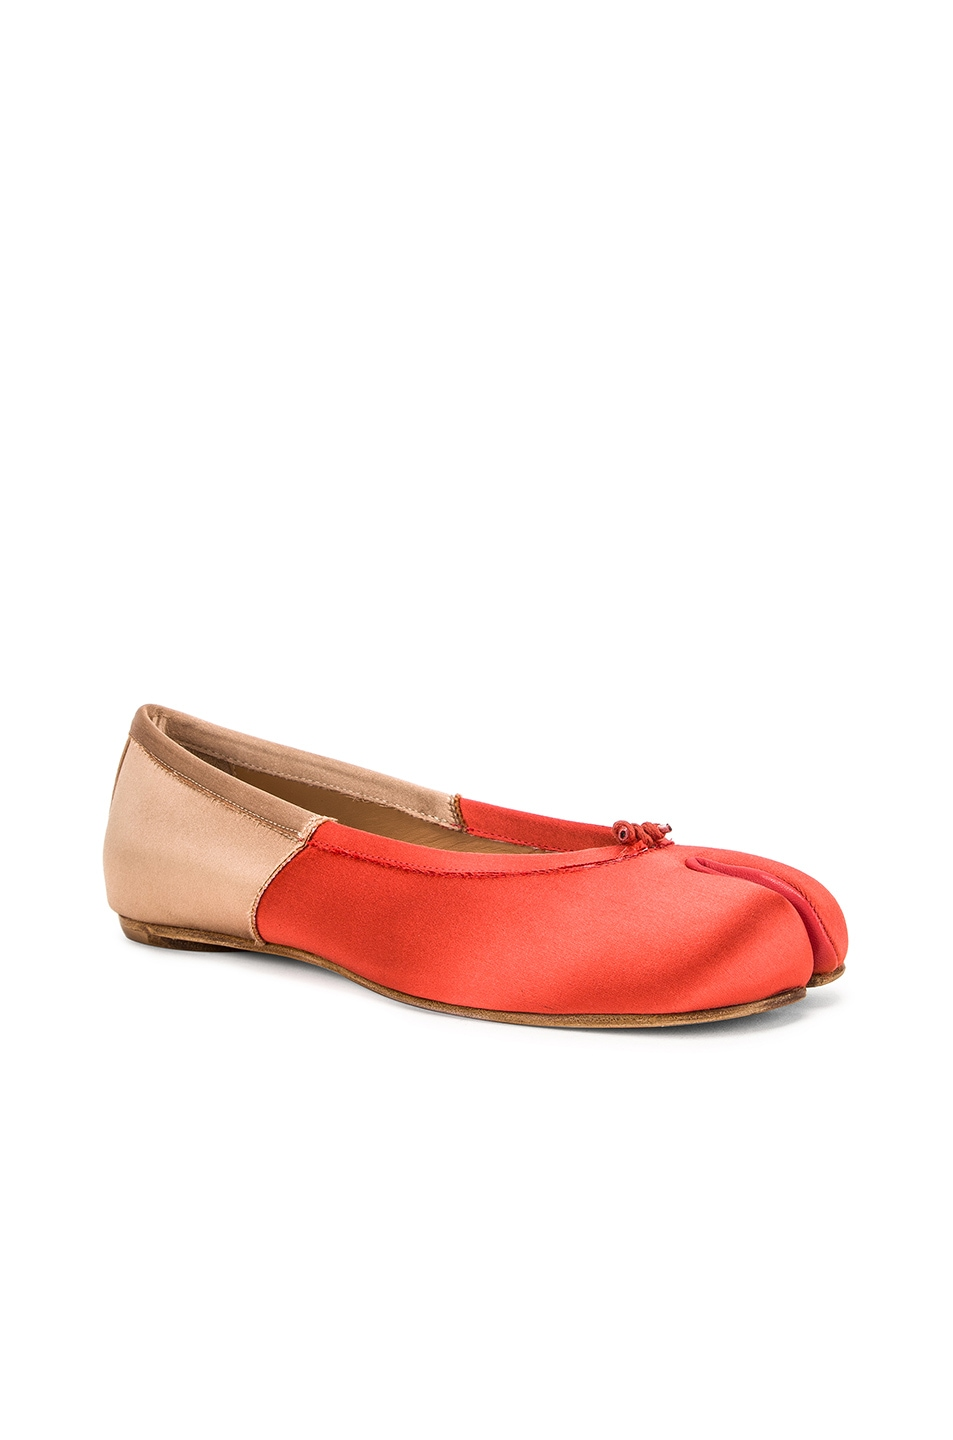 Image 2 of Maison Margiela Colorblock Ballerina Flat in Coral & Light Pink